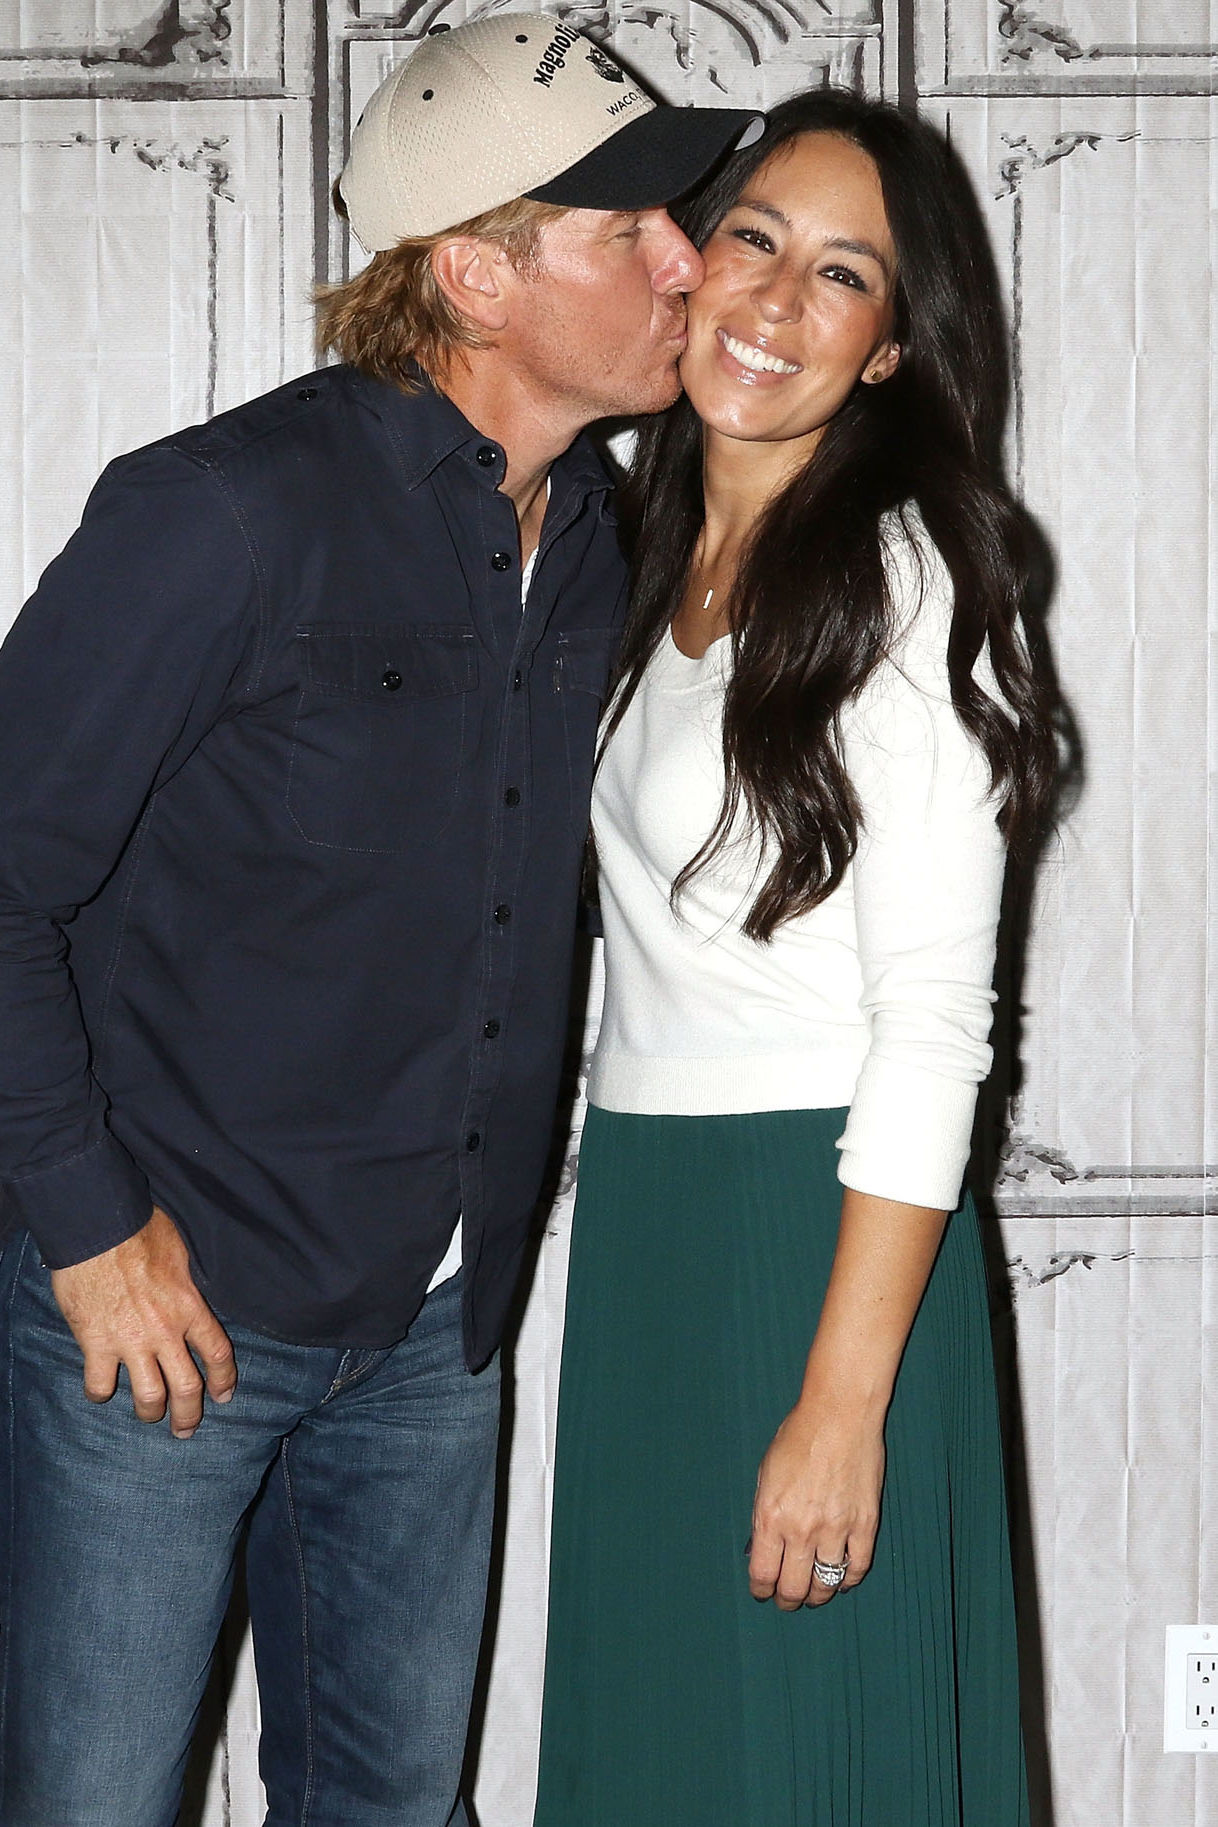 Mark Your Calendars: Chip and Joanna Gaines' Vacation Rental Is Accepting Reservations Again in February